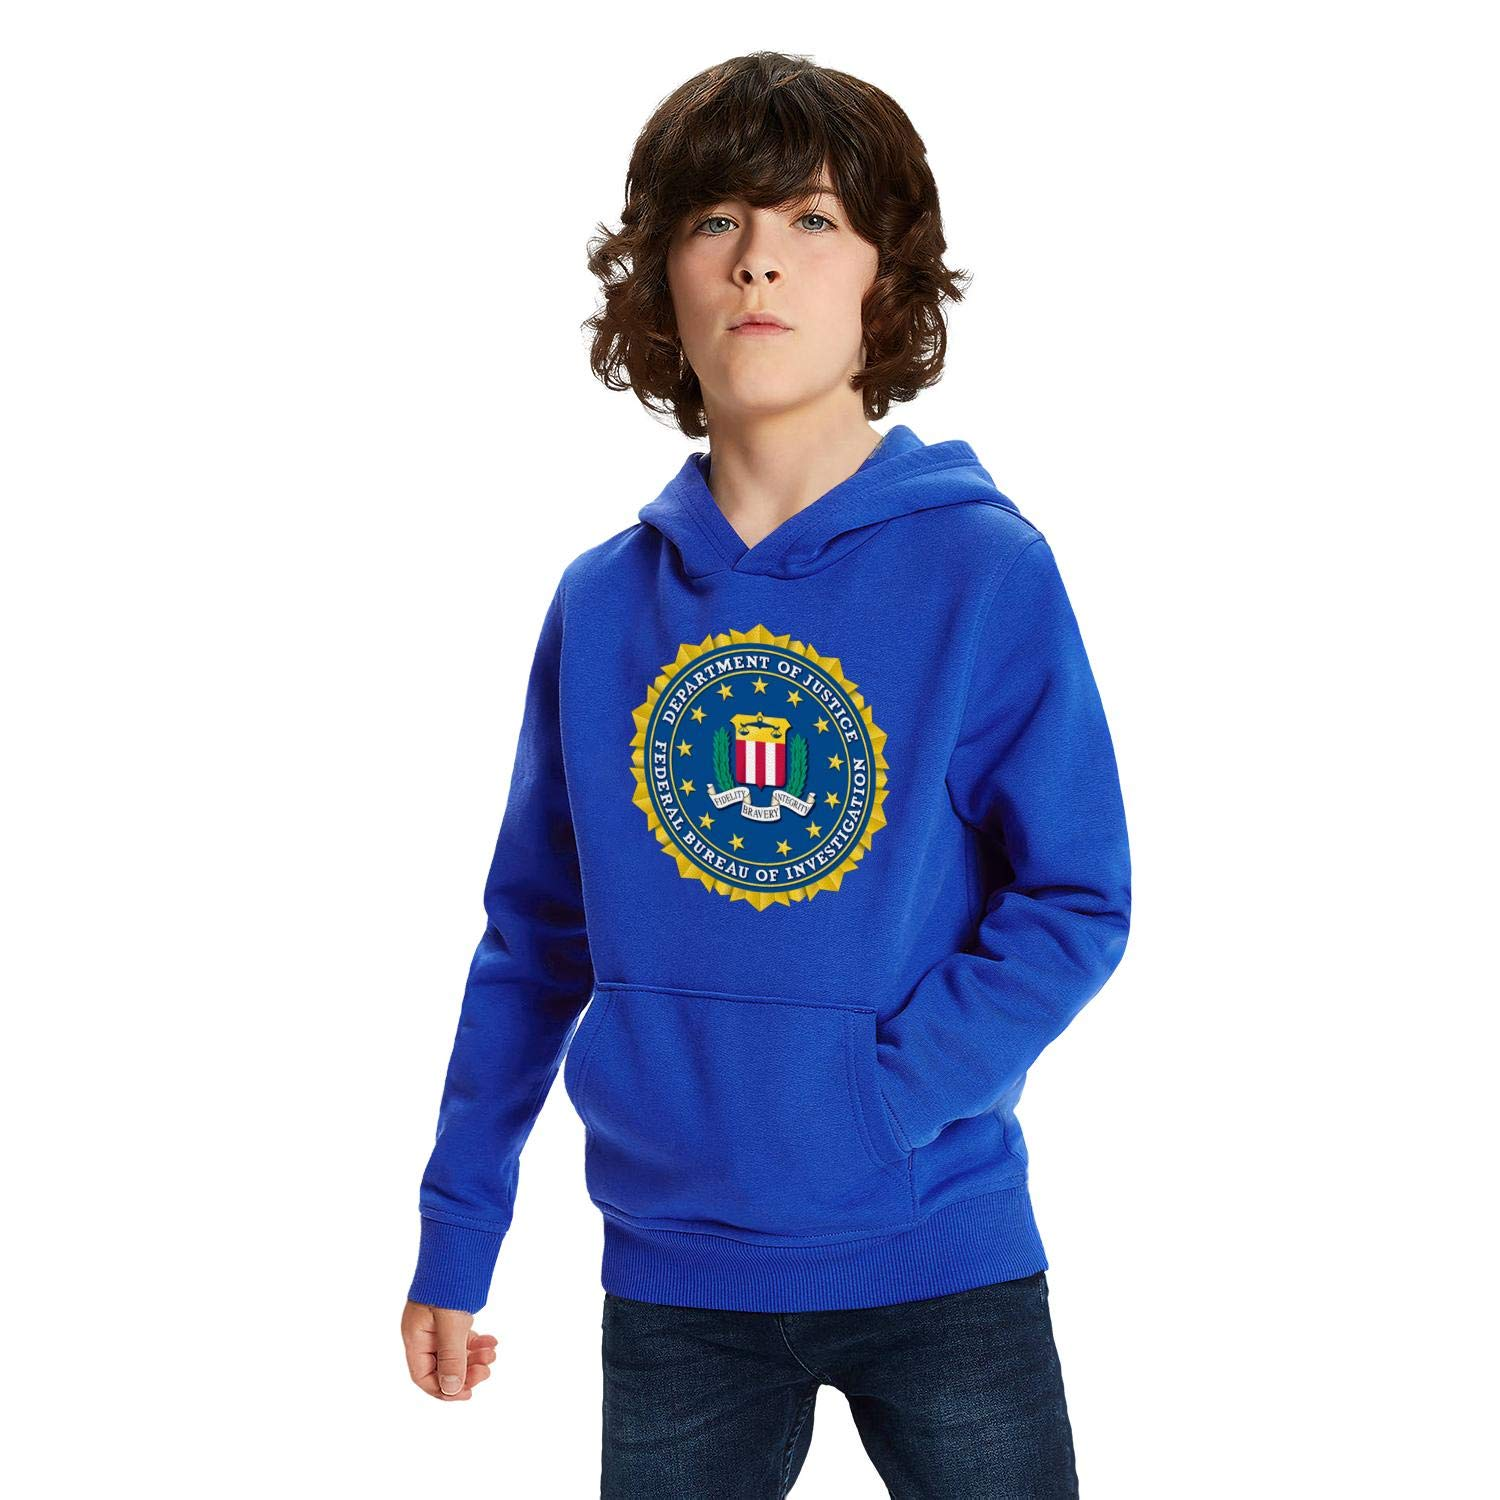 Kids Pullover Hoodies Casual Hooded Sweatshirts Tops with Pocket for Age5-13 Boys Girls